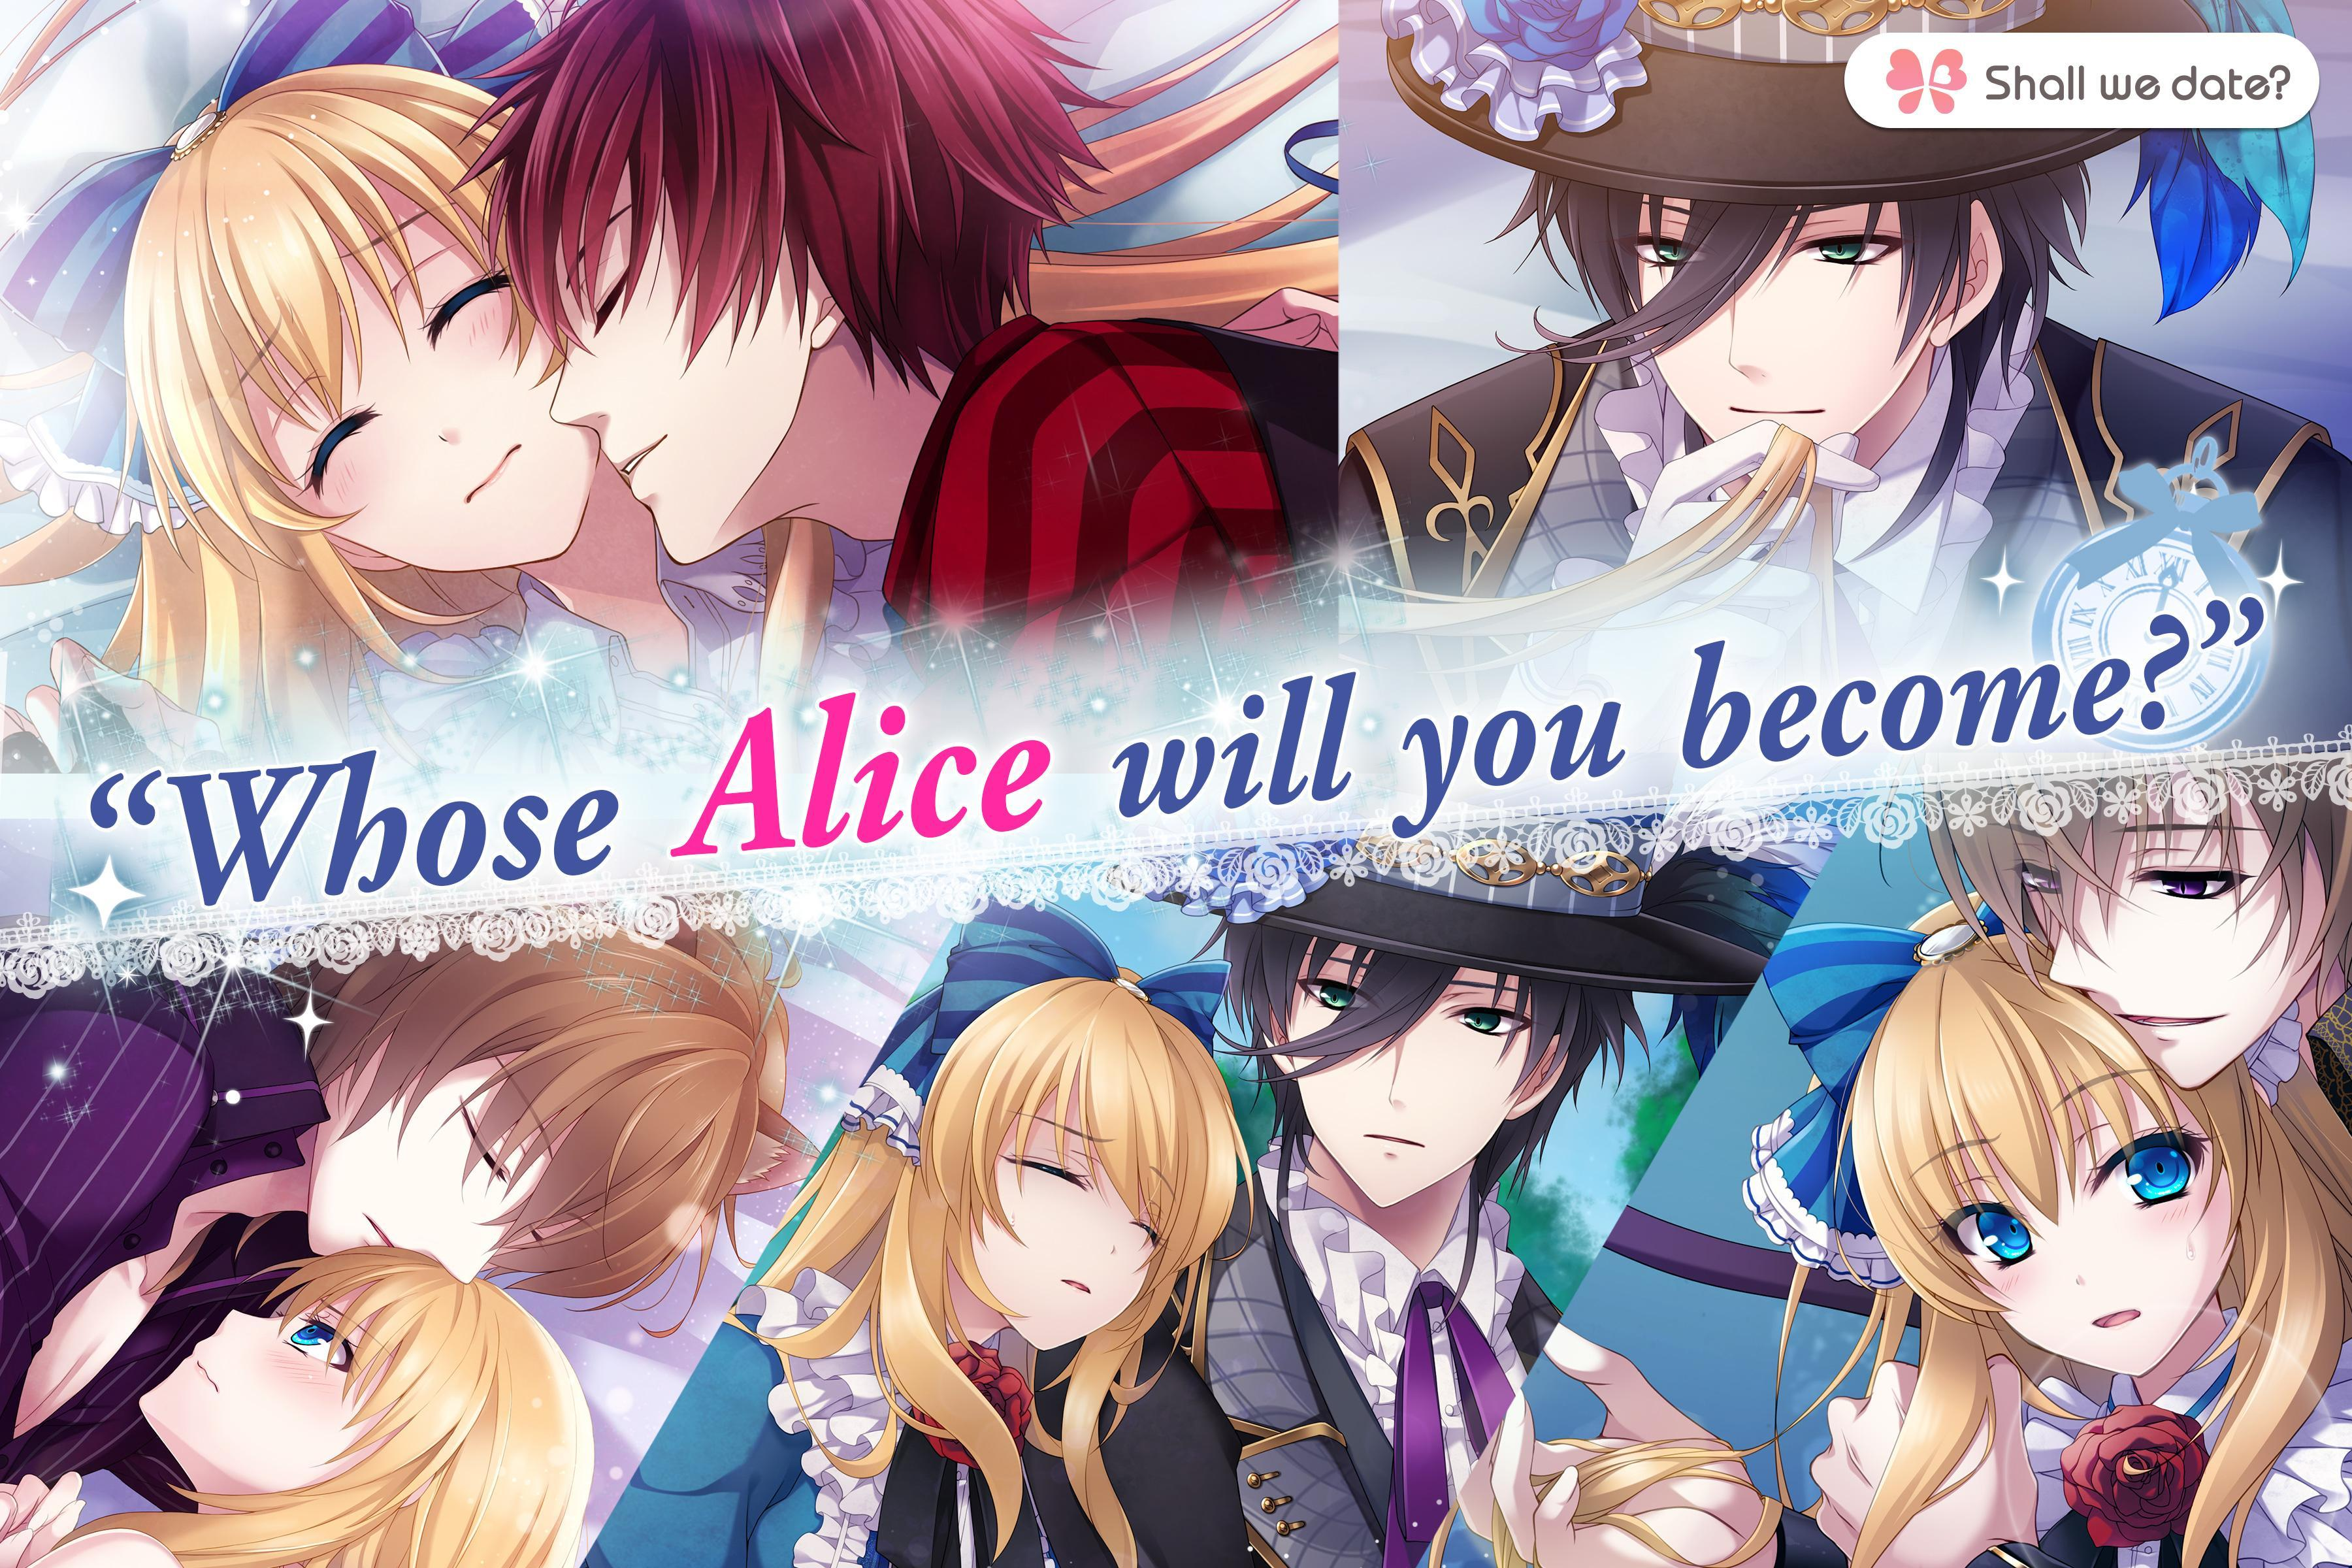 Lost Alice - otome game/dating sim #shall we date 1.5.1 Screenshot 17